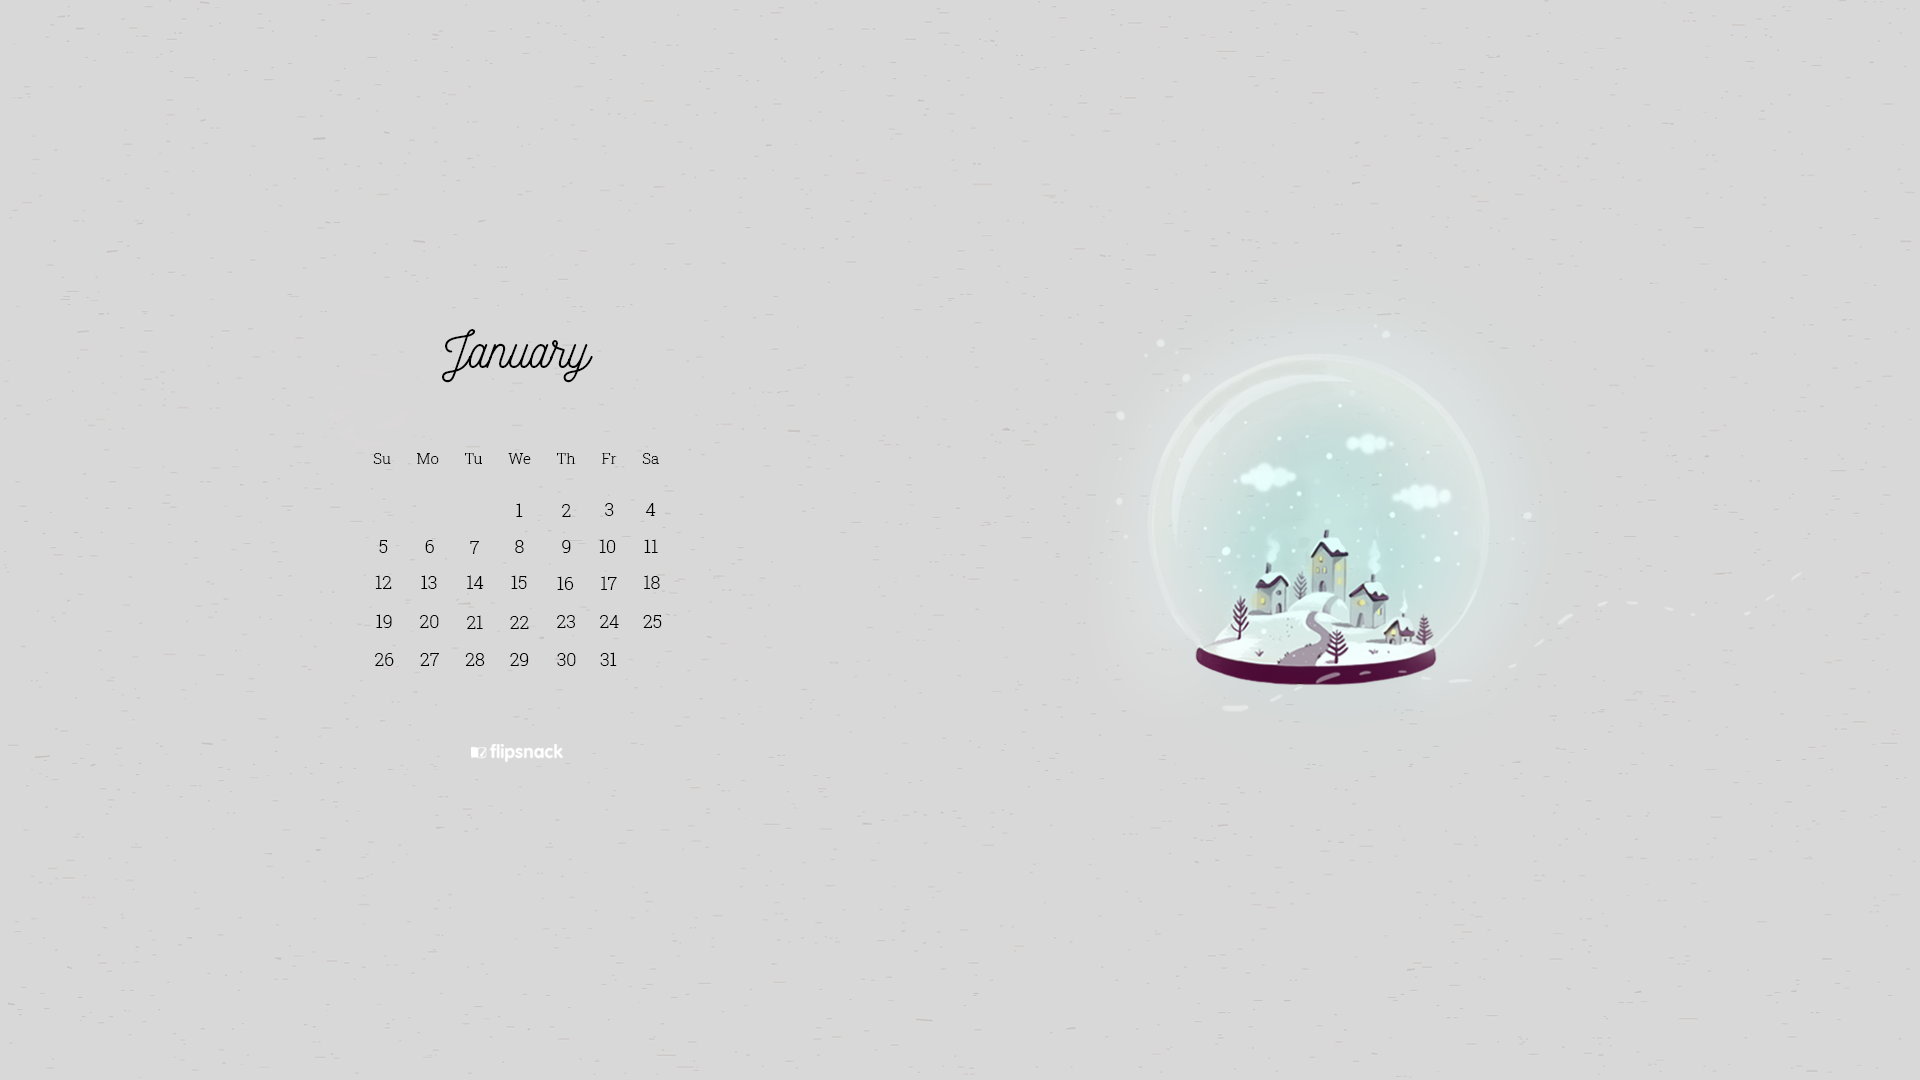 January 2020 wallpaper calendar